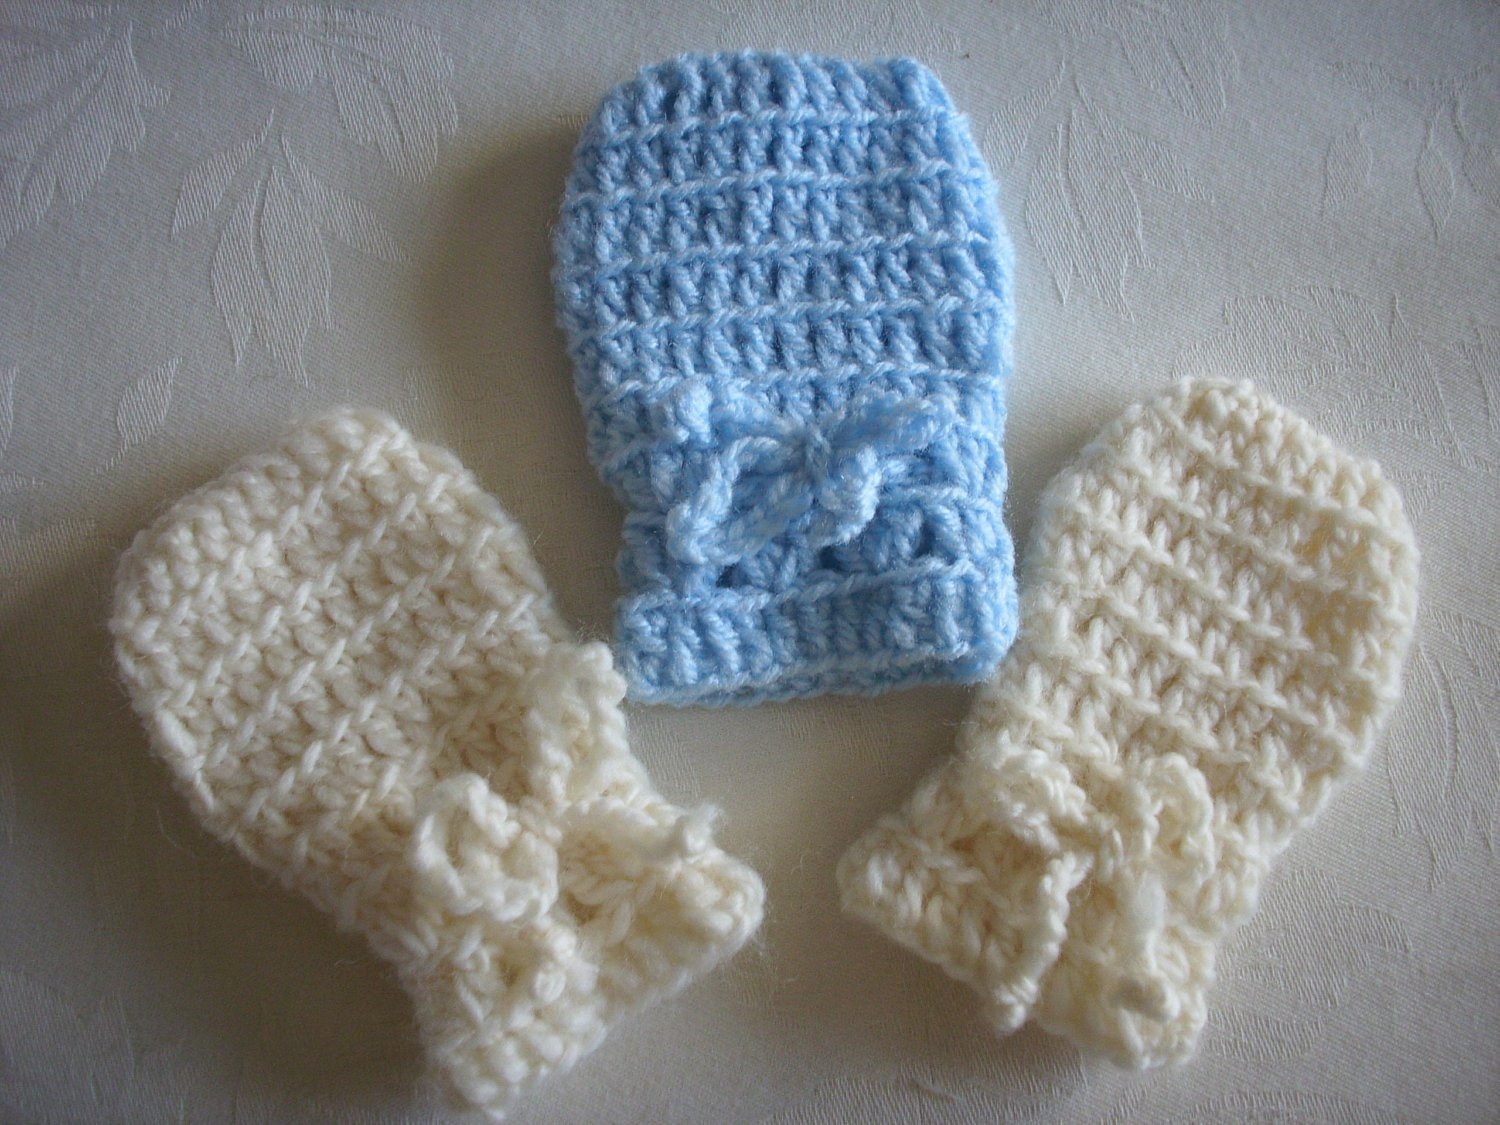 Best Of Pdf Crochet Pattern Baby Infant Thumbless Mittens Winter Crochet toddler Mittens Of Awesome 41 Pictures Crochet toddler Mittens